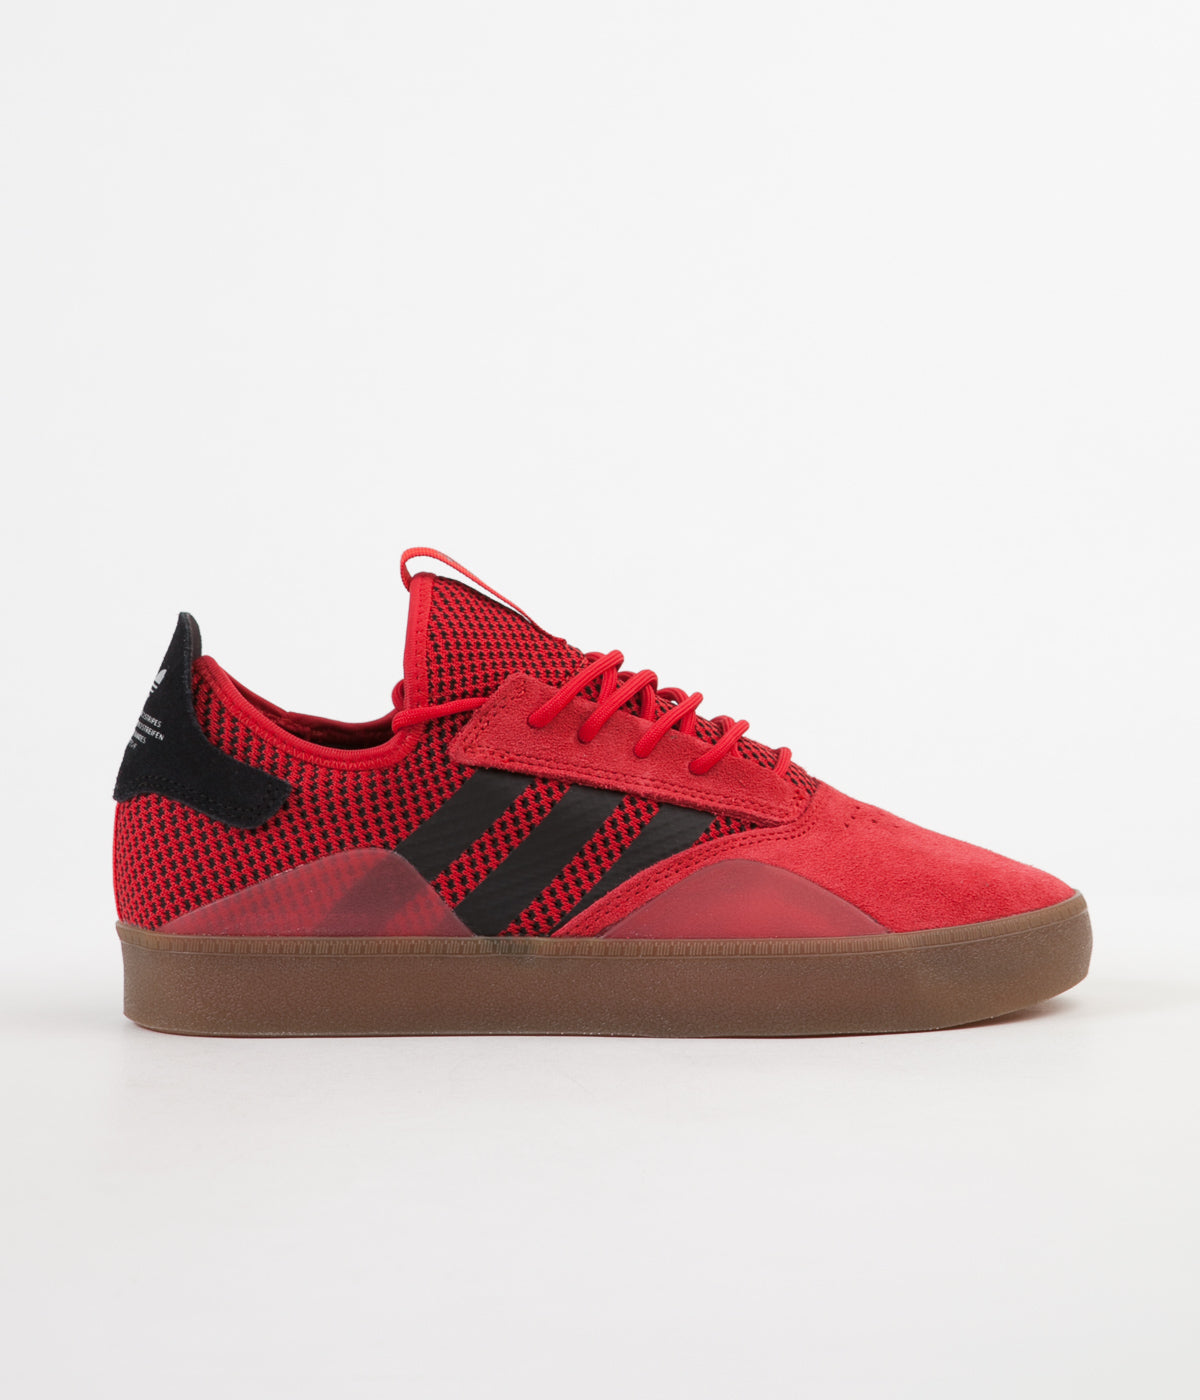 cheap for discount 9b752 7b485 ... Adidas 3ST.001 Shoes - Scarlet  Core Black  Gum4 ...